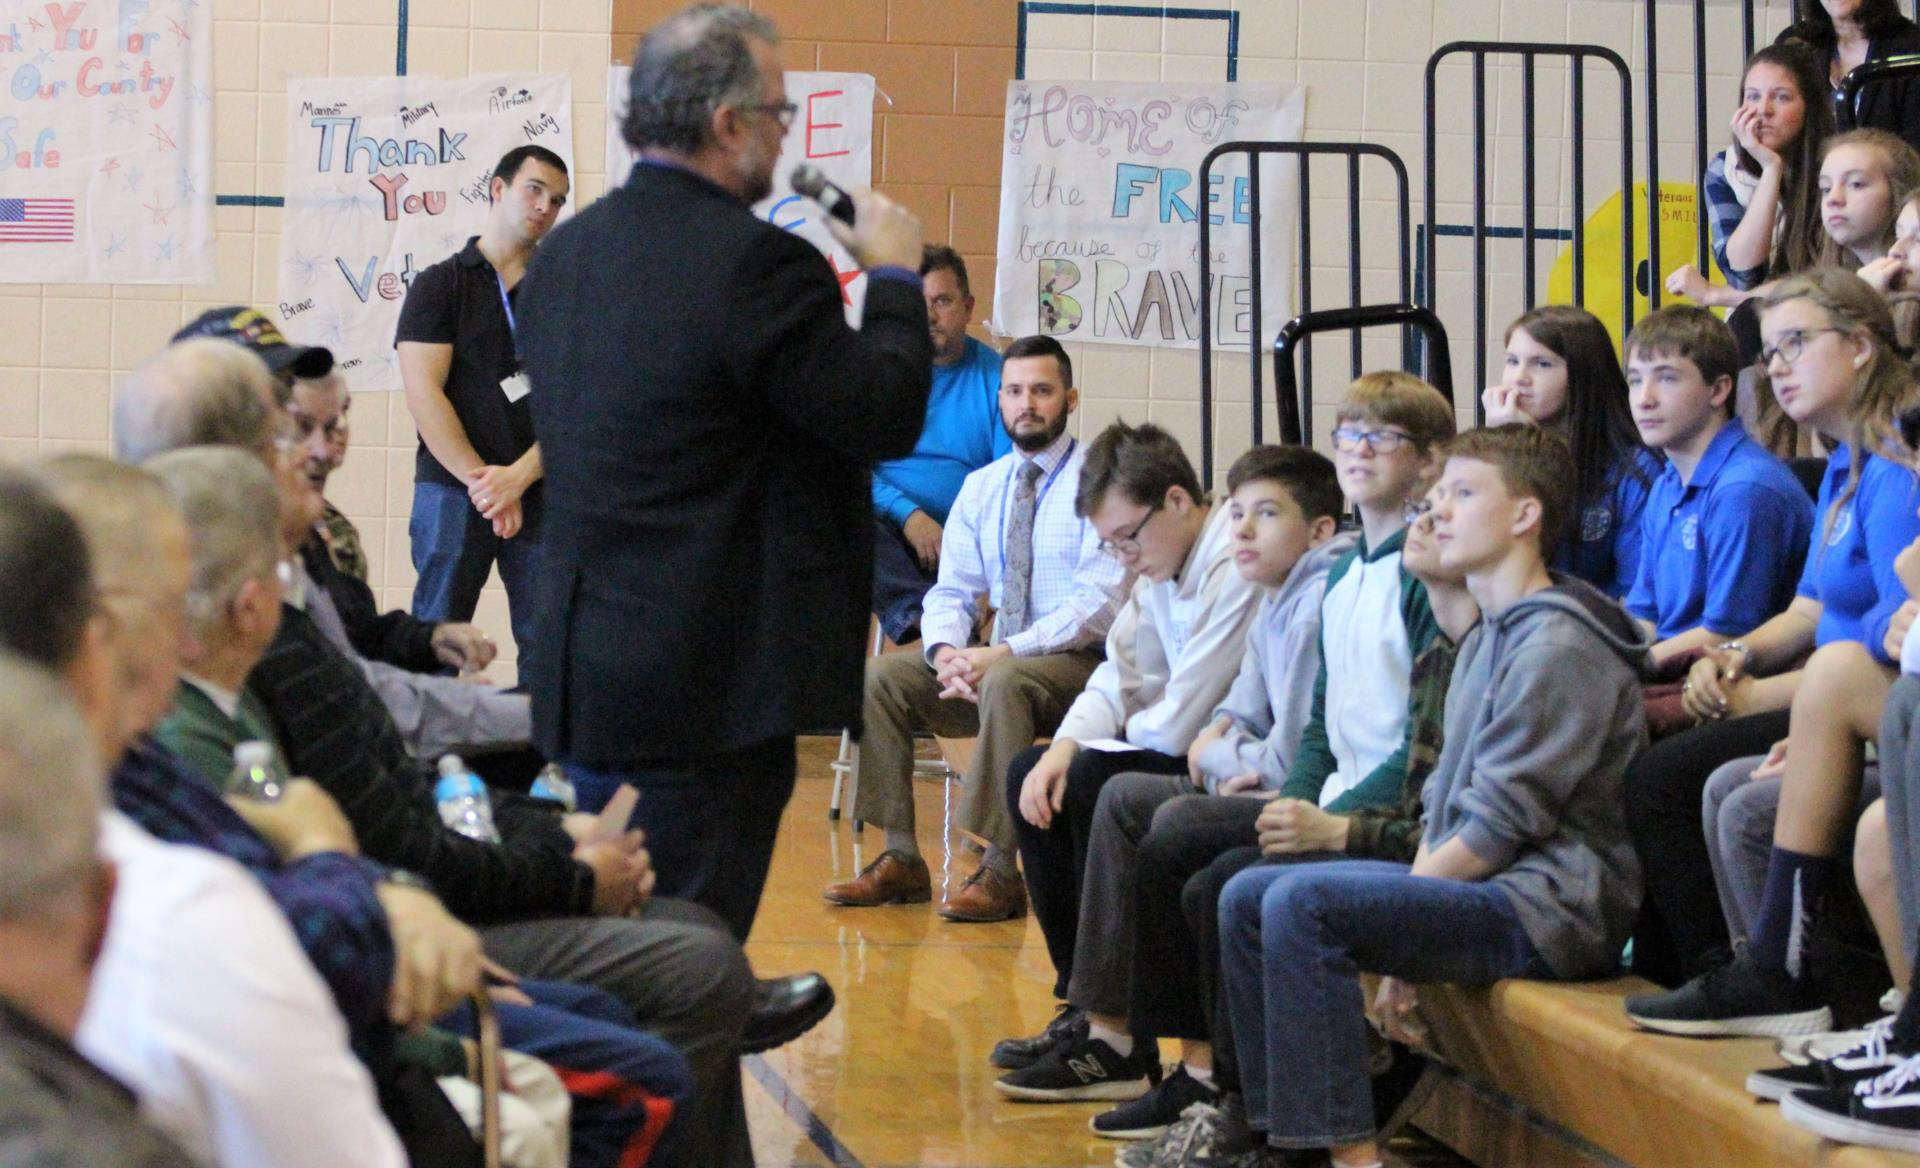 Students ask questions of veterans at a previous ceremony